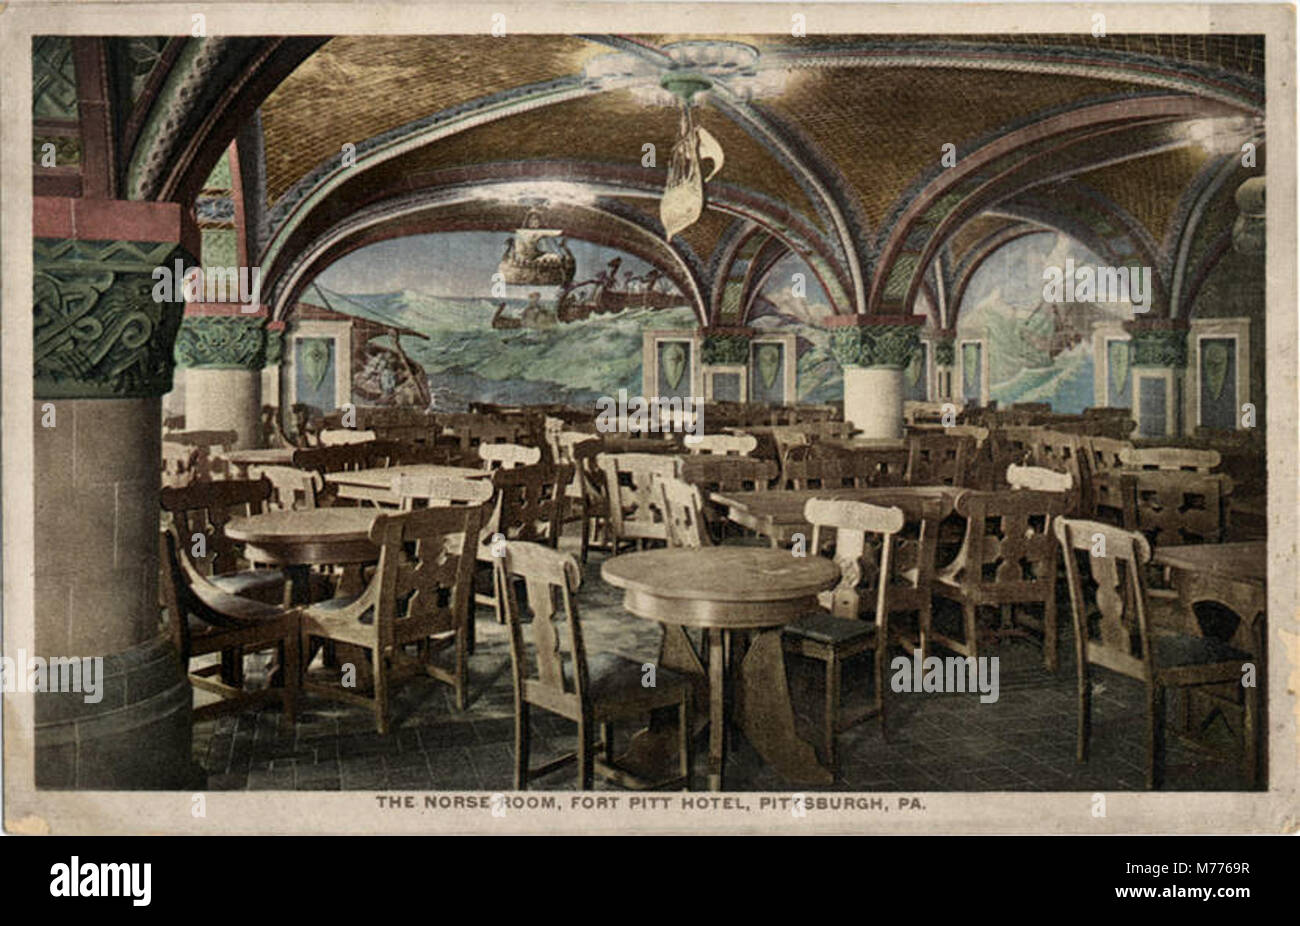 The Norse Room, Fort Pitt Hotel (NBY 22372)   Stock Image